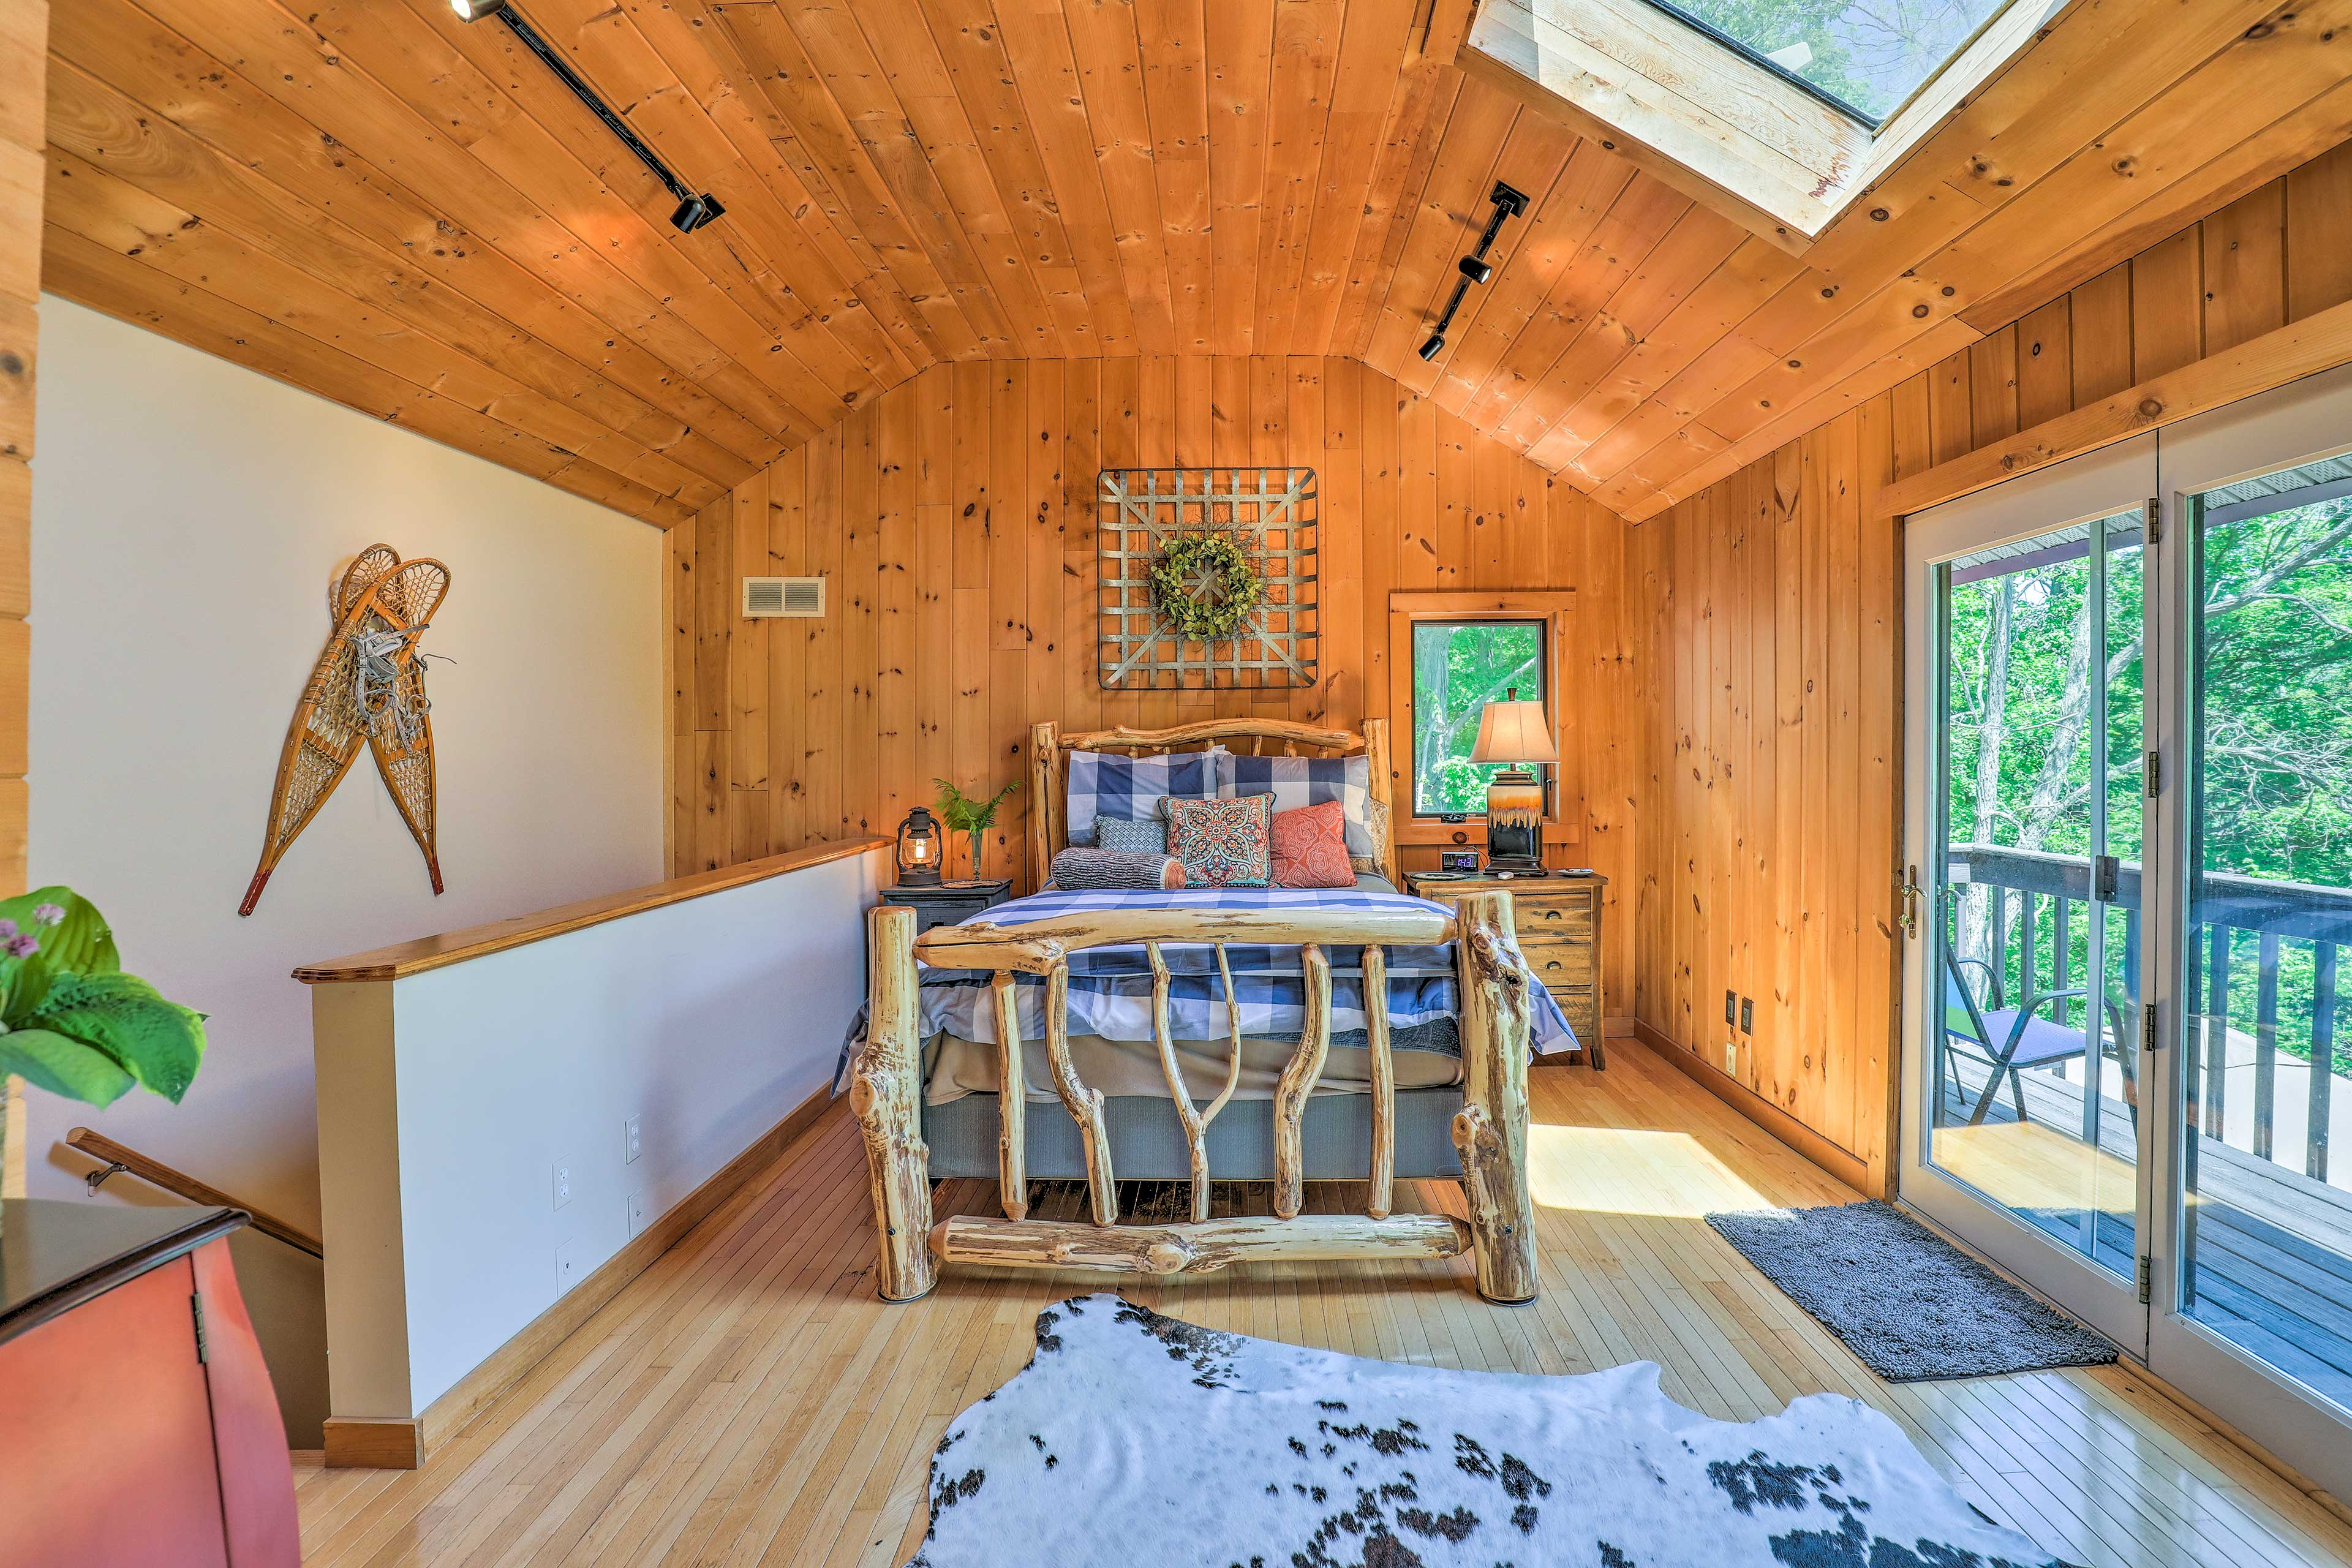 Skylights and mountain-themed decor complete the bedroom oasis.